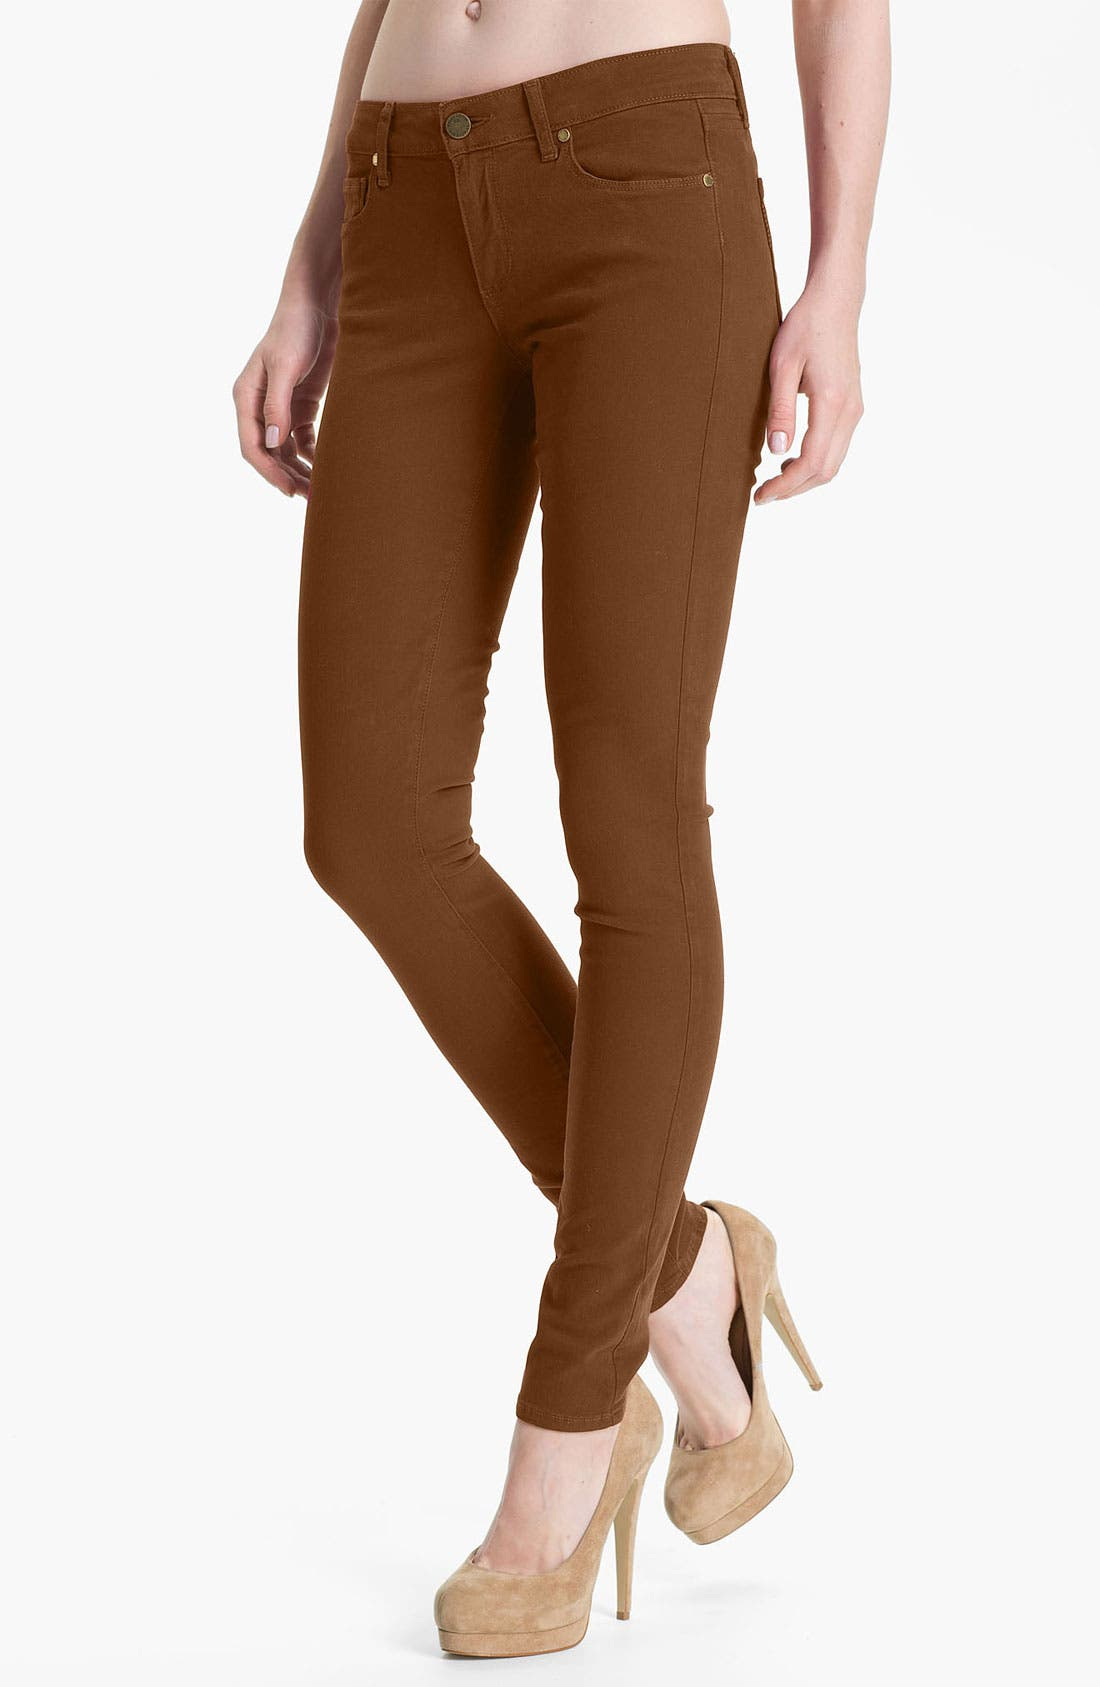 Alternate Image 1 Selected - Paige Denim 'Verdugo' Skinny Stretch Denim Jeans (Burnt)